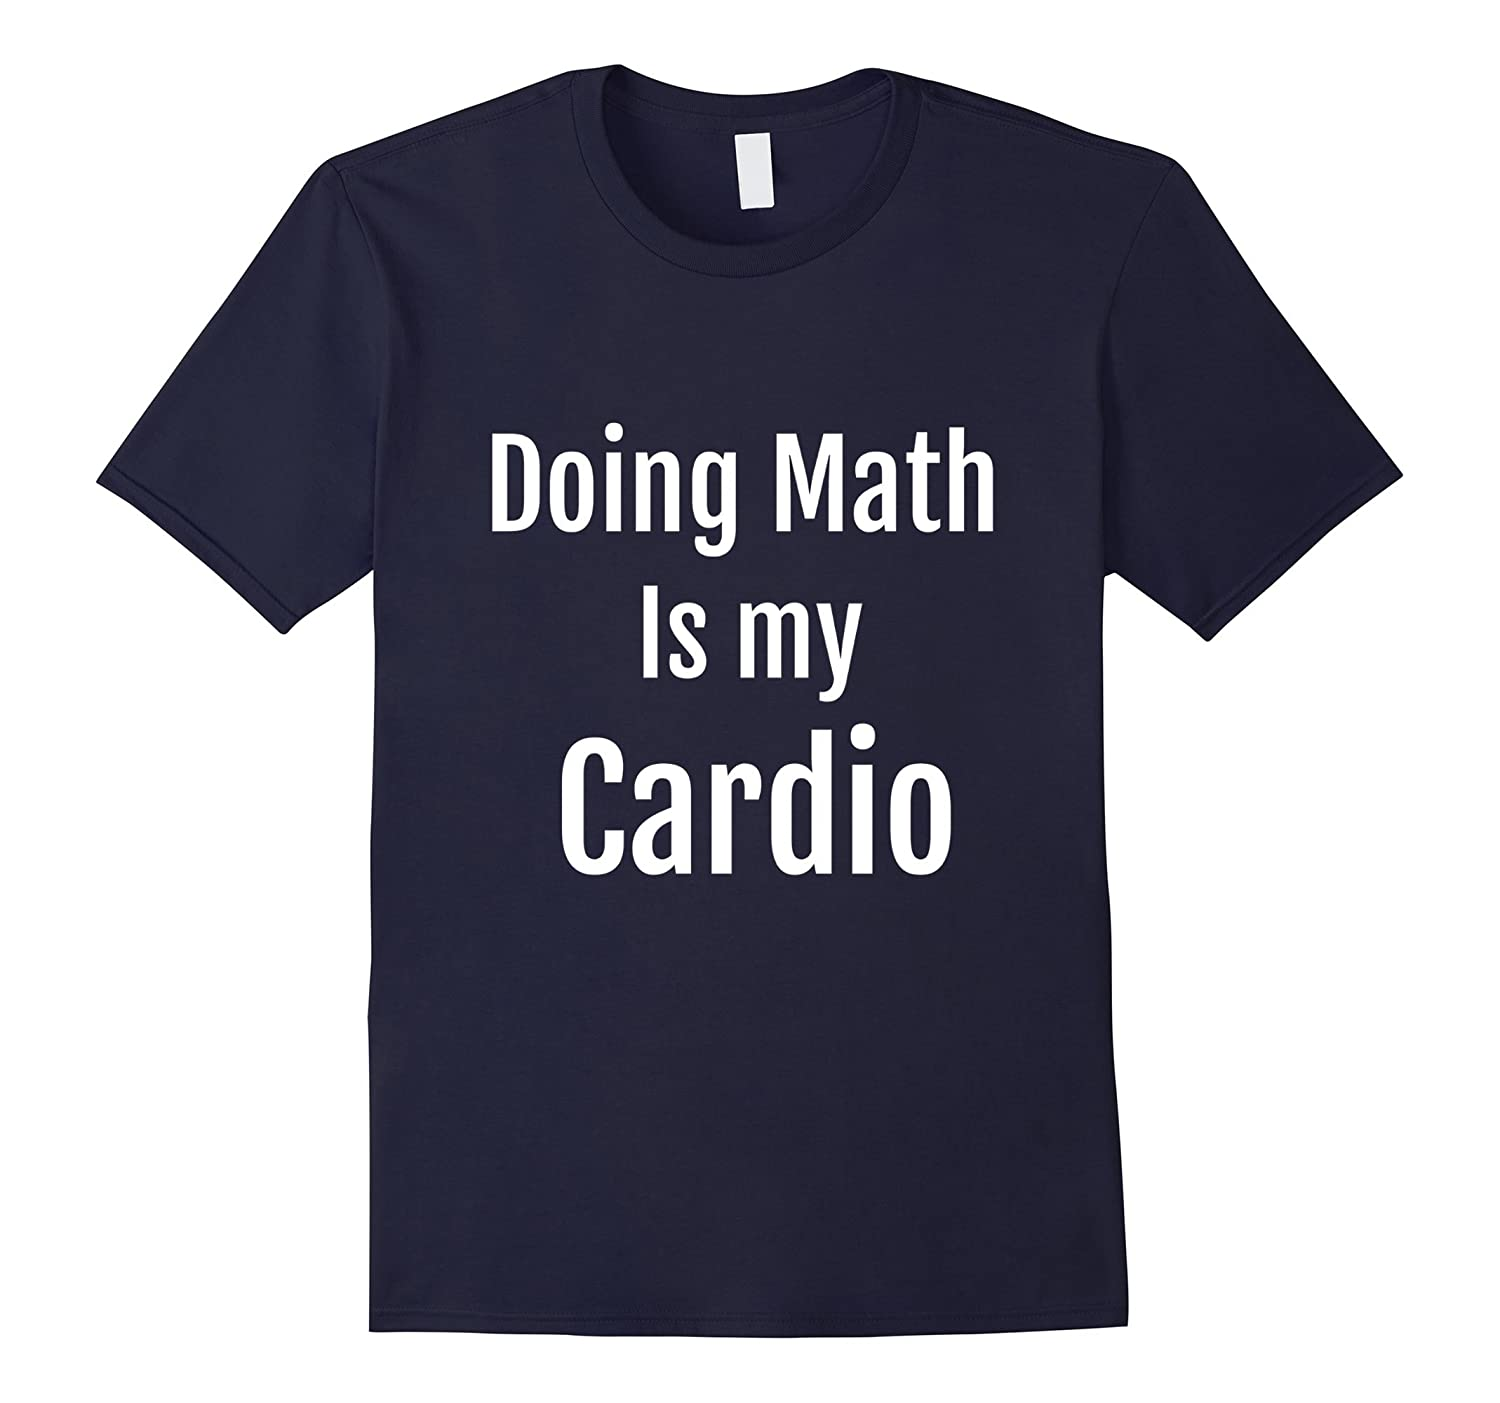 Doing Math Is My Cardio - Funny Gym T Shirt-CL